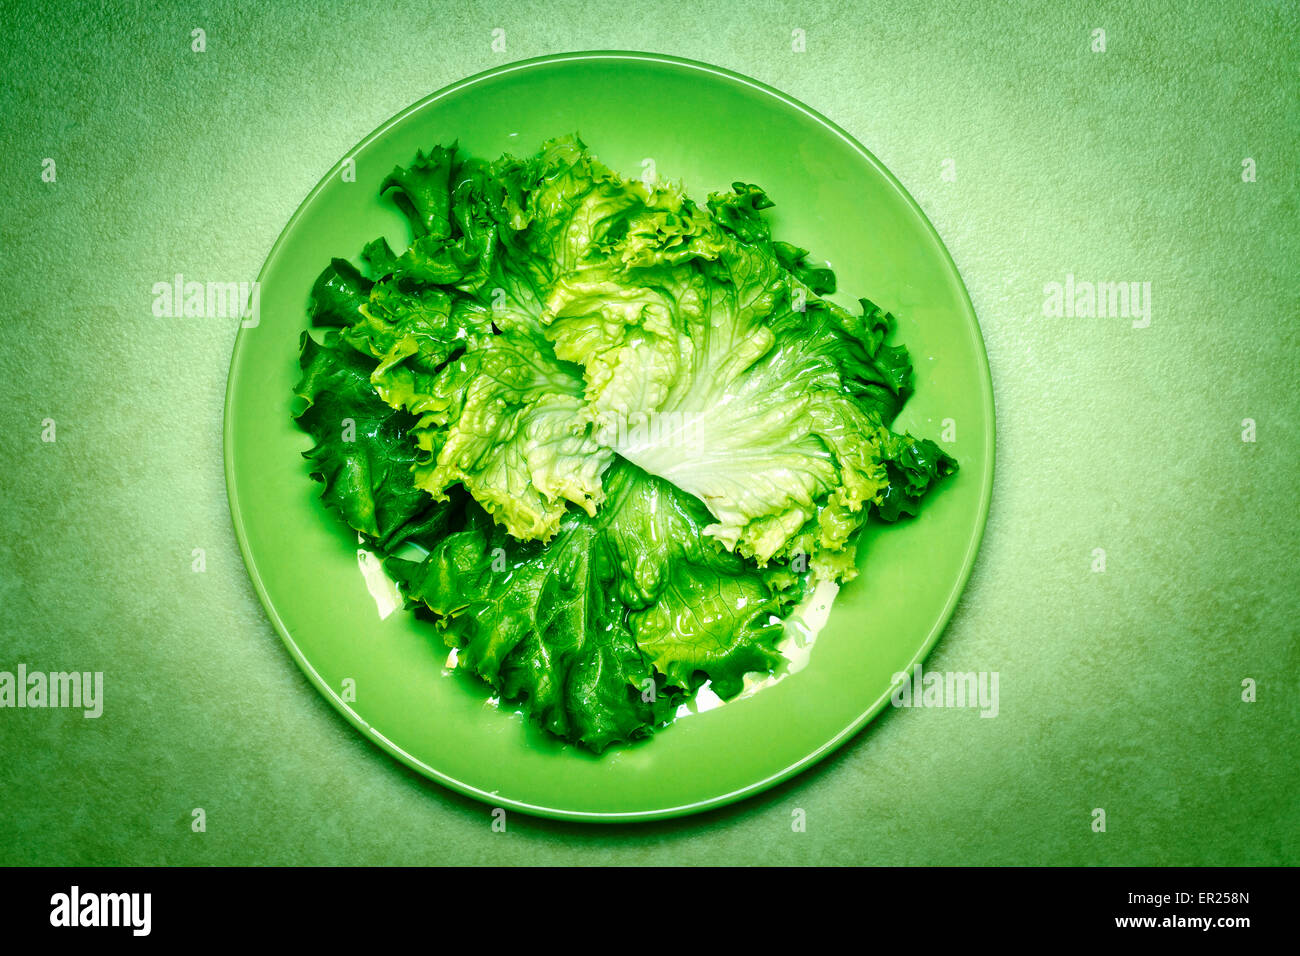 green salad leaves on green plate - Stock Image